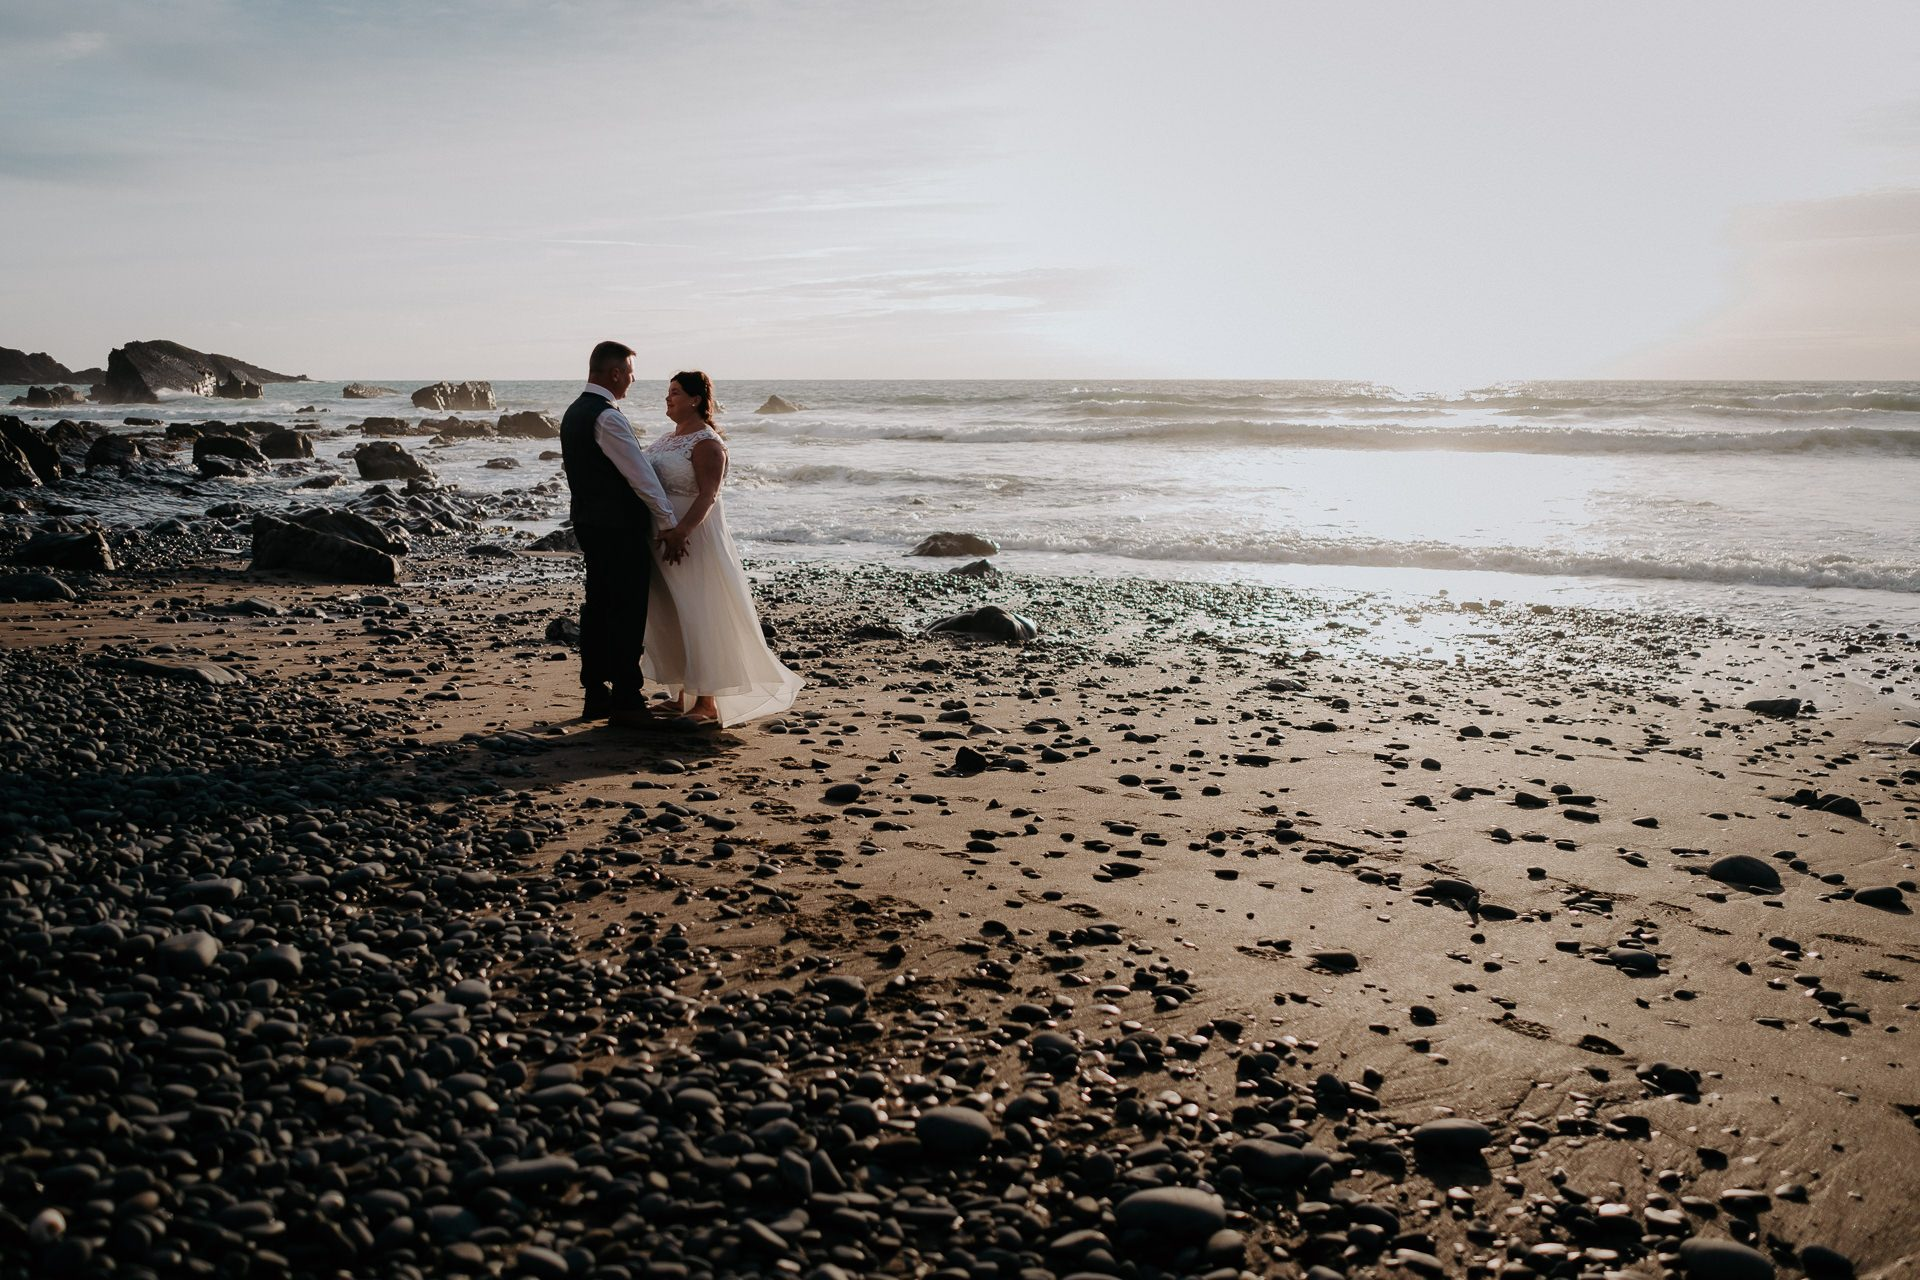 0001-DEVON-SOMERSET-WEDDING-PHOTOGRAPHER-0560-BEST-OF-2019-LOUISE-MAY-DEVON-SOMERSET-WEDDING-PHOTOGRAPHY-20190910-18-52-32-20190910185232LM107907-2